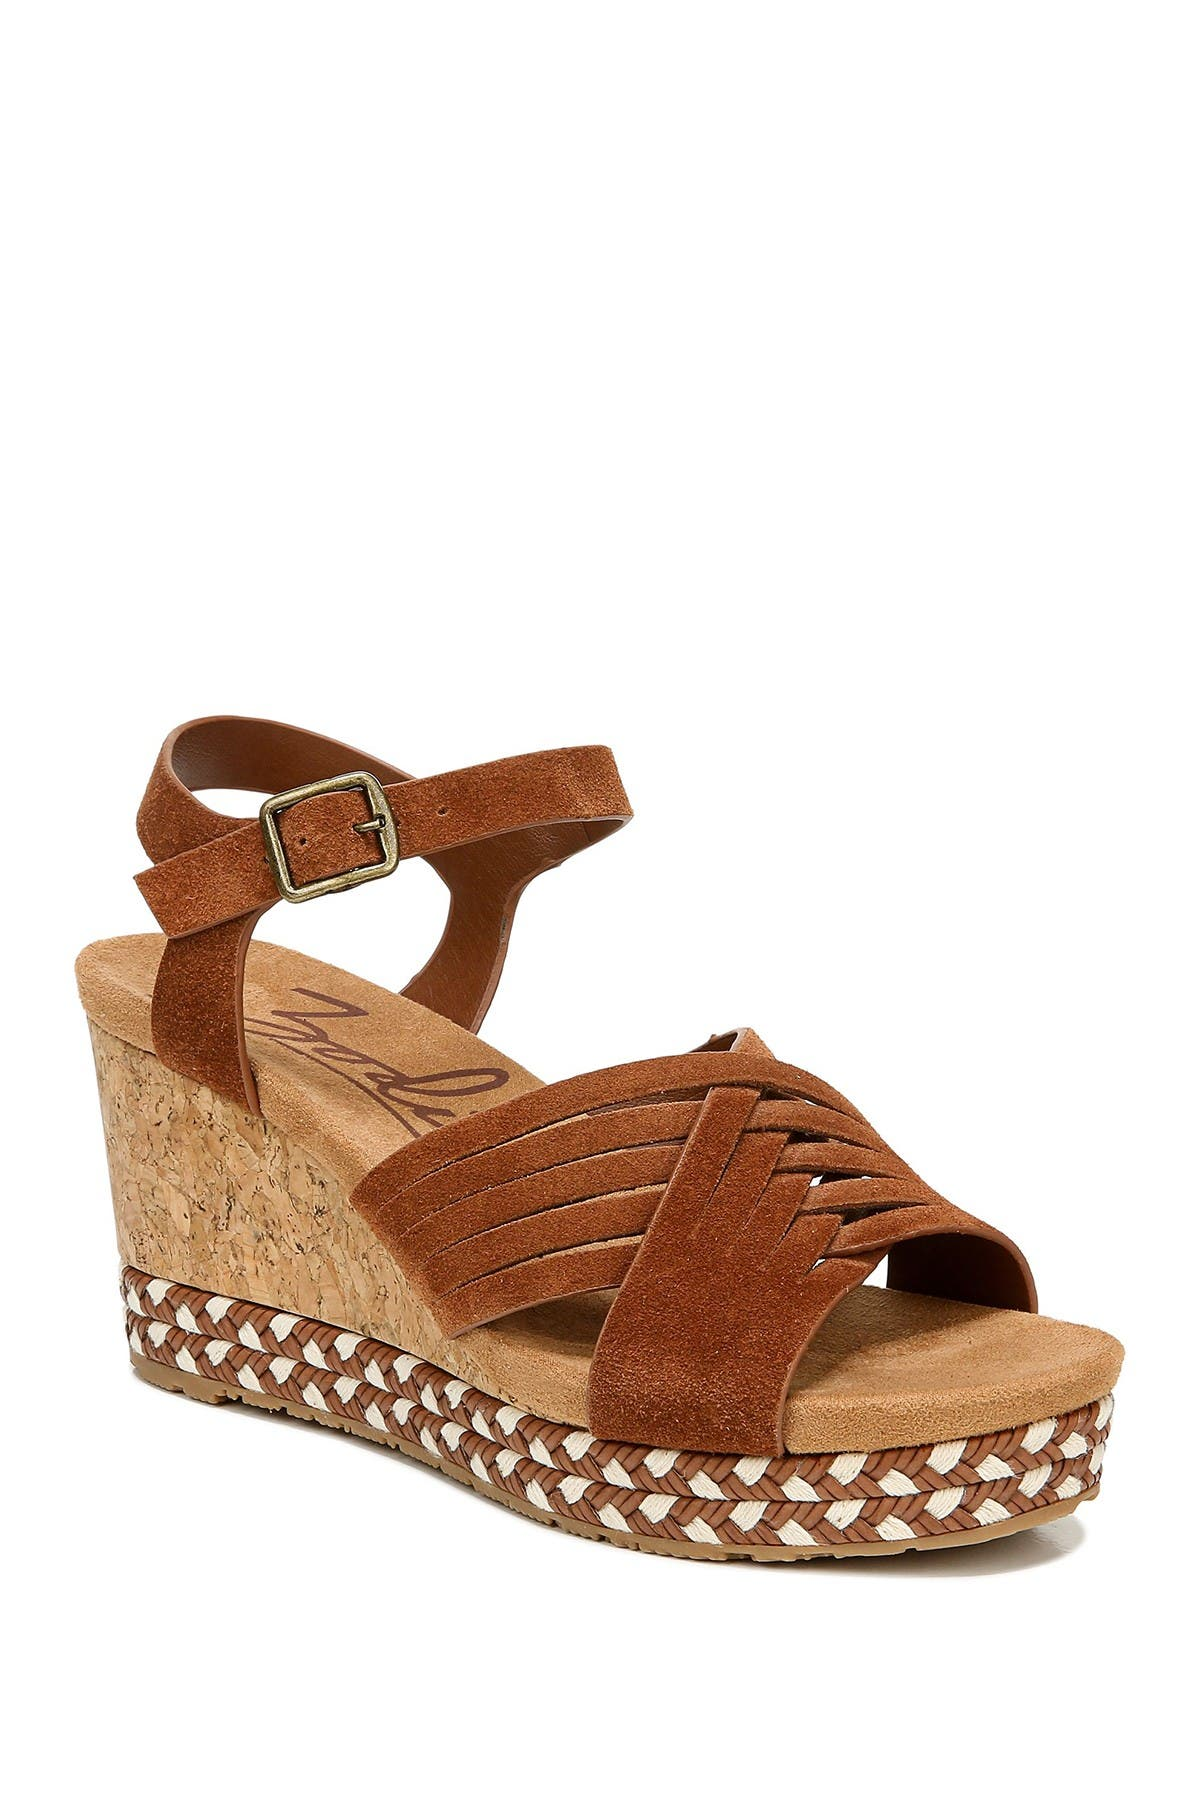 Image of Zodiac Paola Suede Wedge Sandal